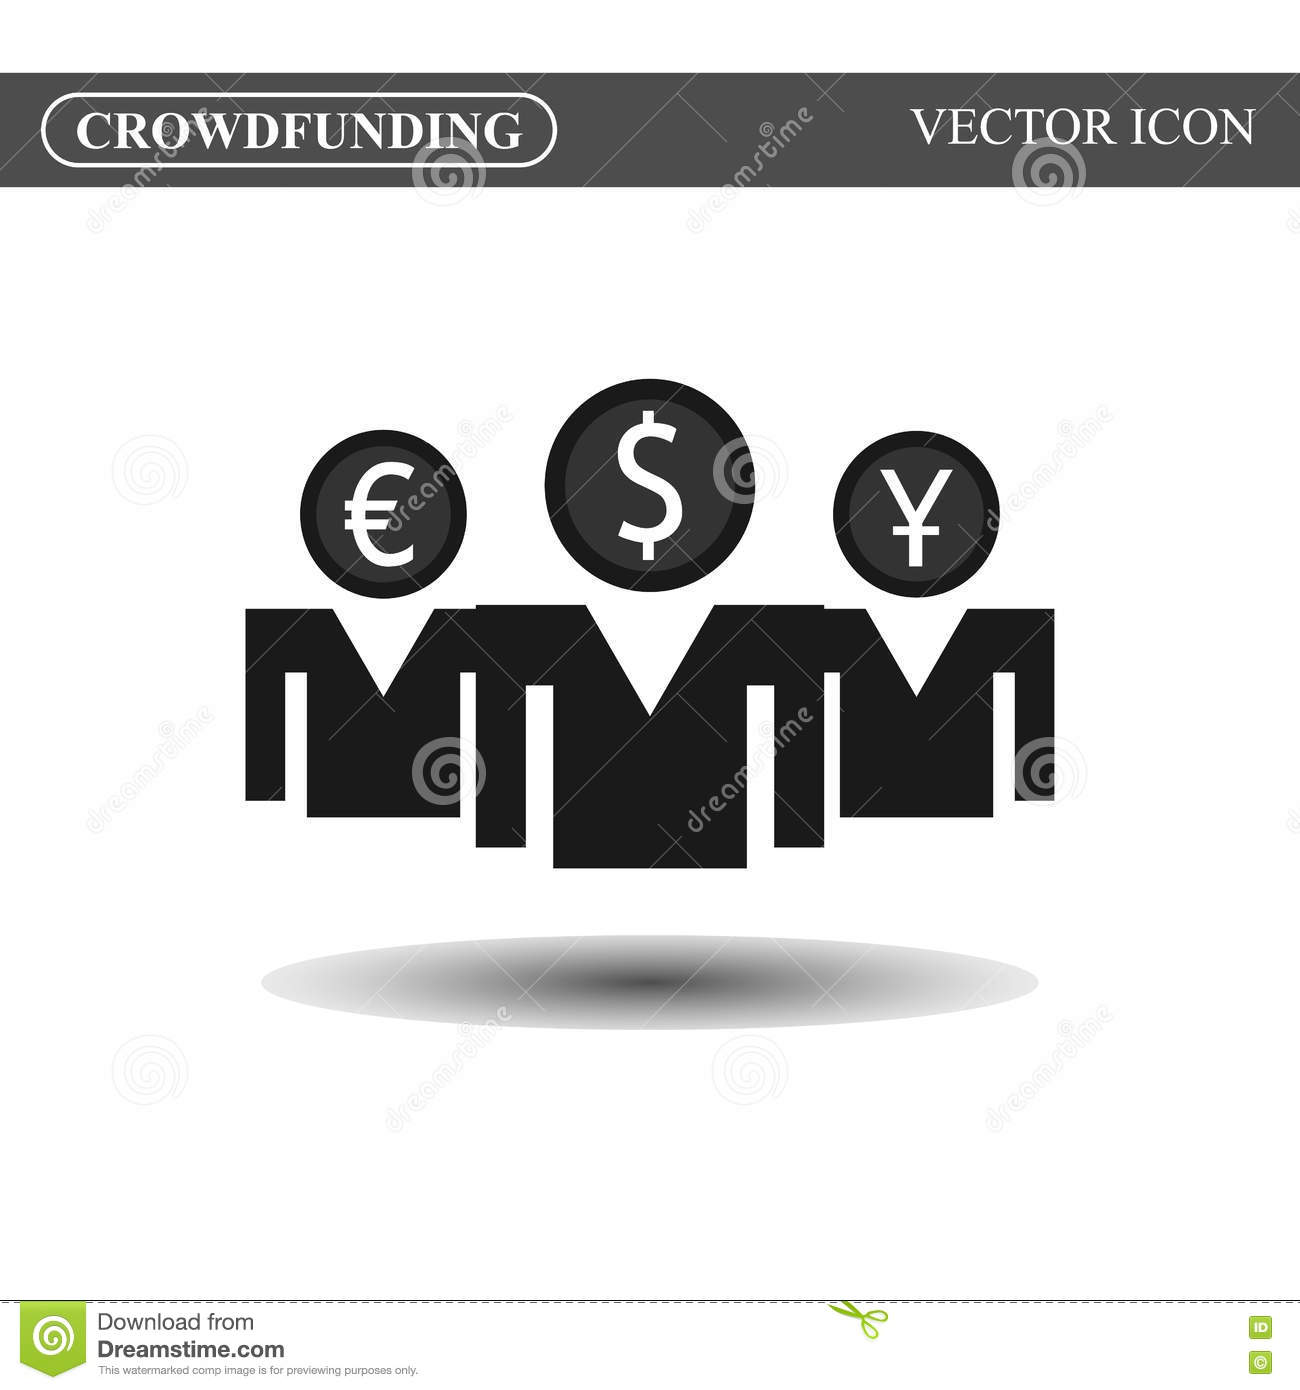 crowdfunding icon stock illustration illustration of businessman